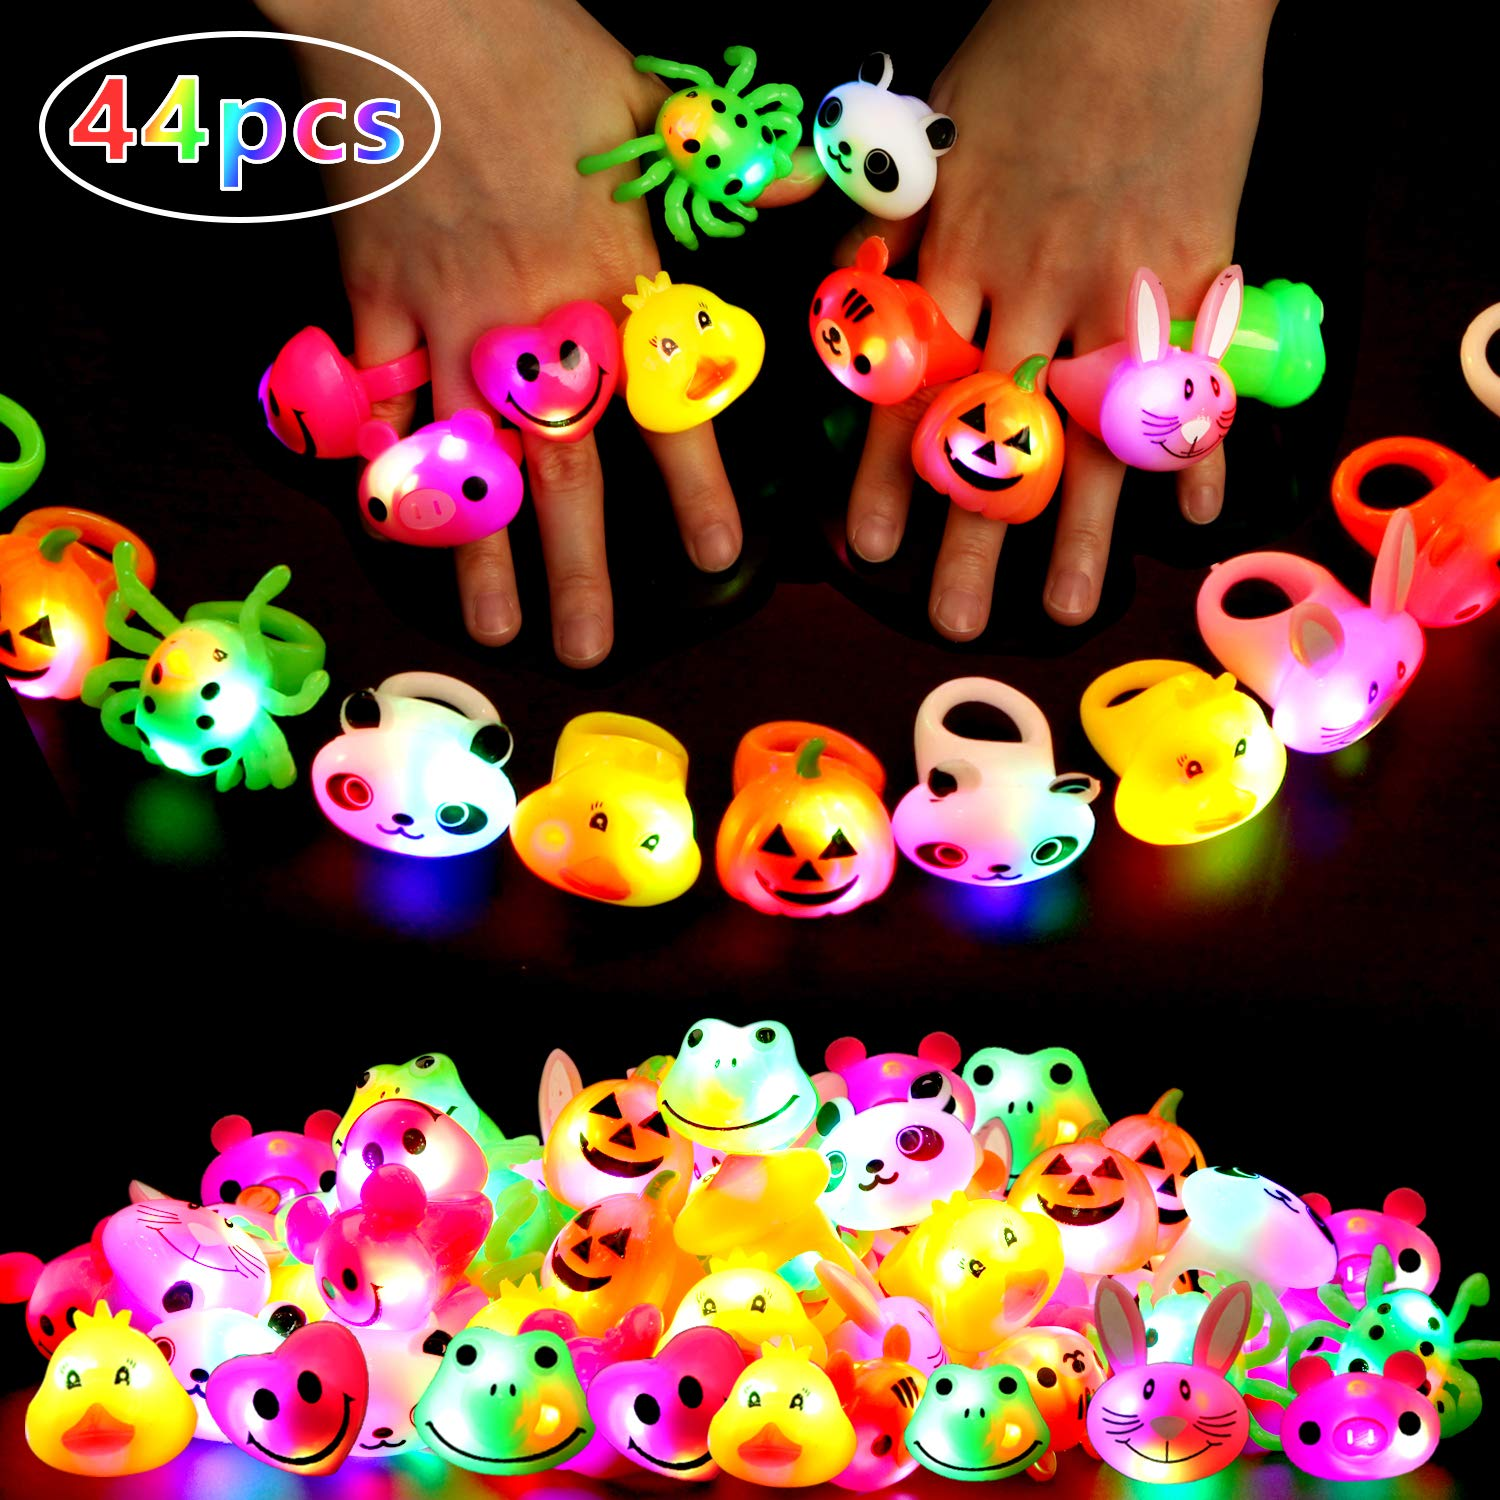 44 Pack Light Up Toys Party Favors for Kids/Adults, 40 Pack Light Up Rings Glow in The Dark Party Supplies and 4 Pack LED Glasses Halloween Birthday Gifts for Boys/Girls by MAO MAO JEWELRY